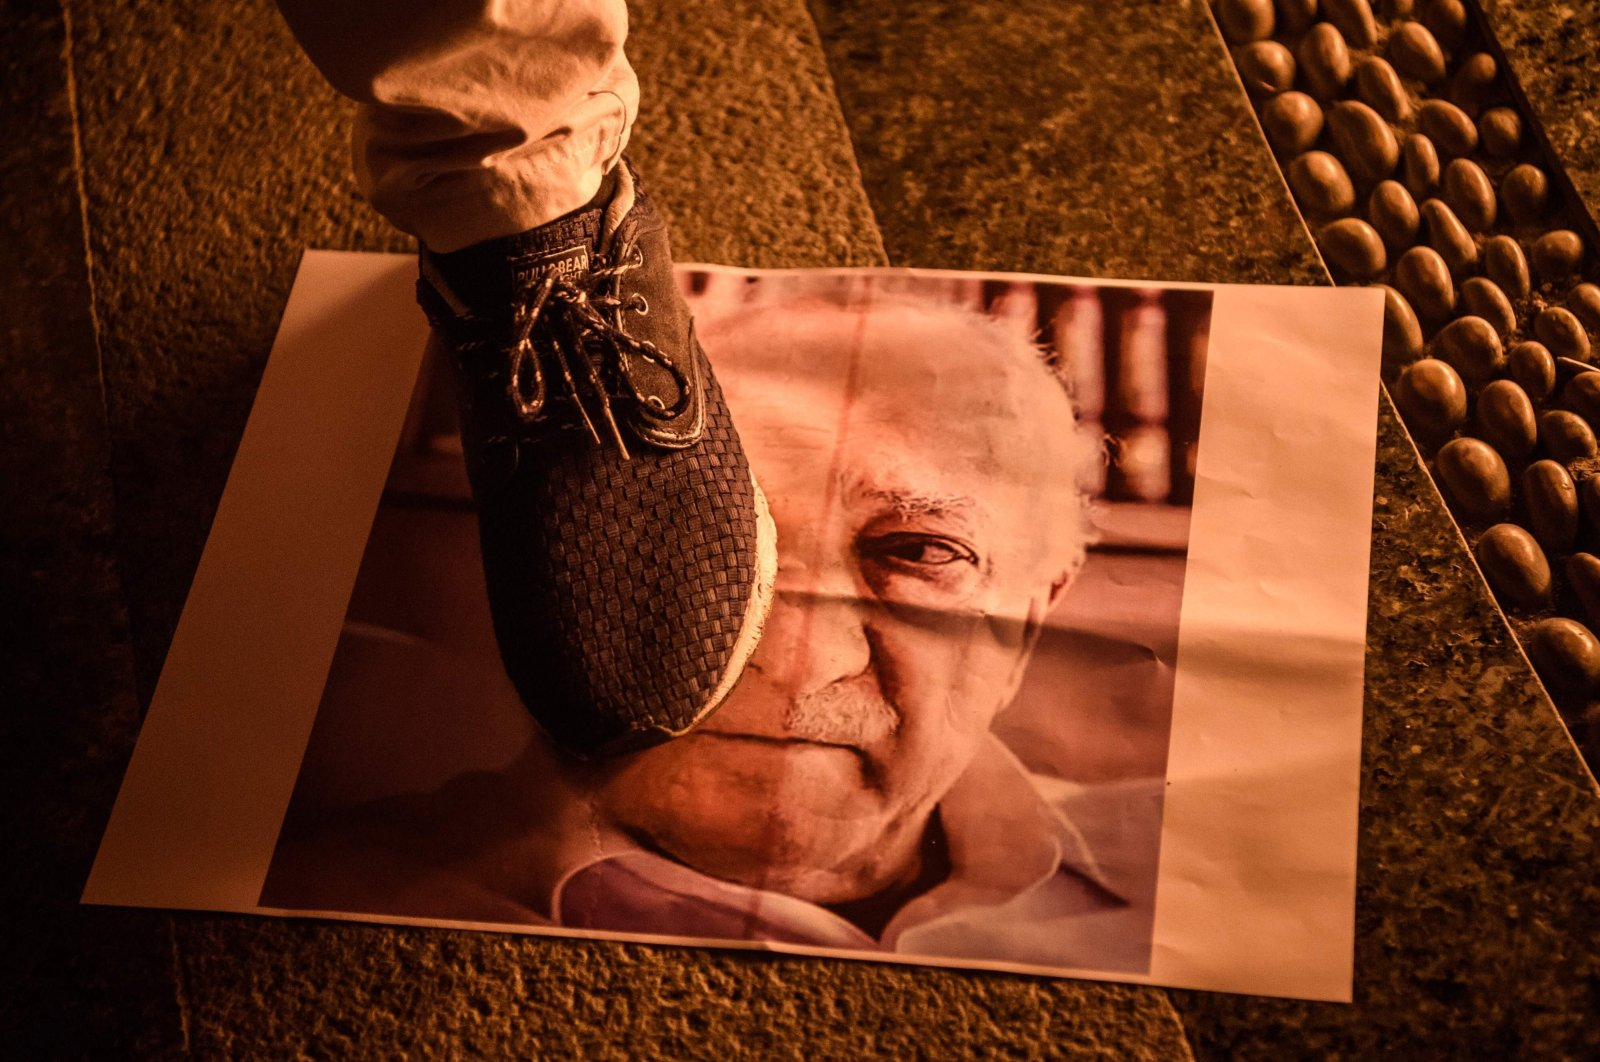 An anti-coup protester steps on a poster of FETÖ leader Fetullah Gülen, during a rally in Istanbul, Turkey, July 18, 2016. (AFP PHOTO)